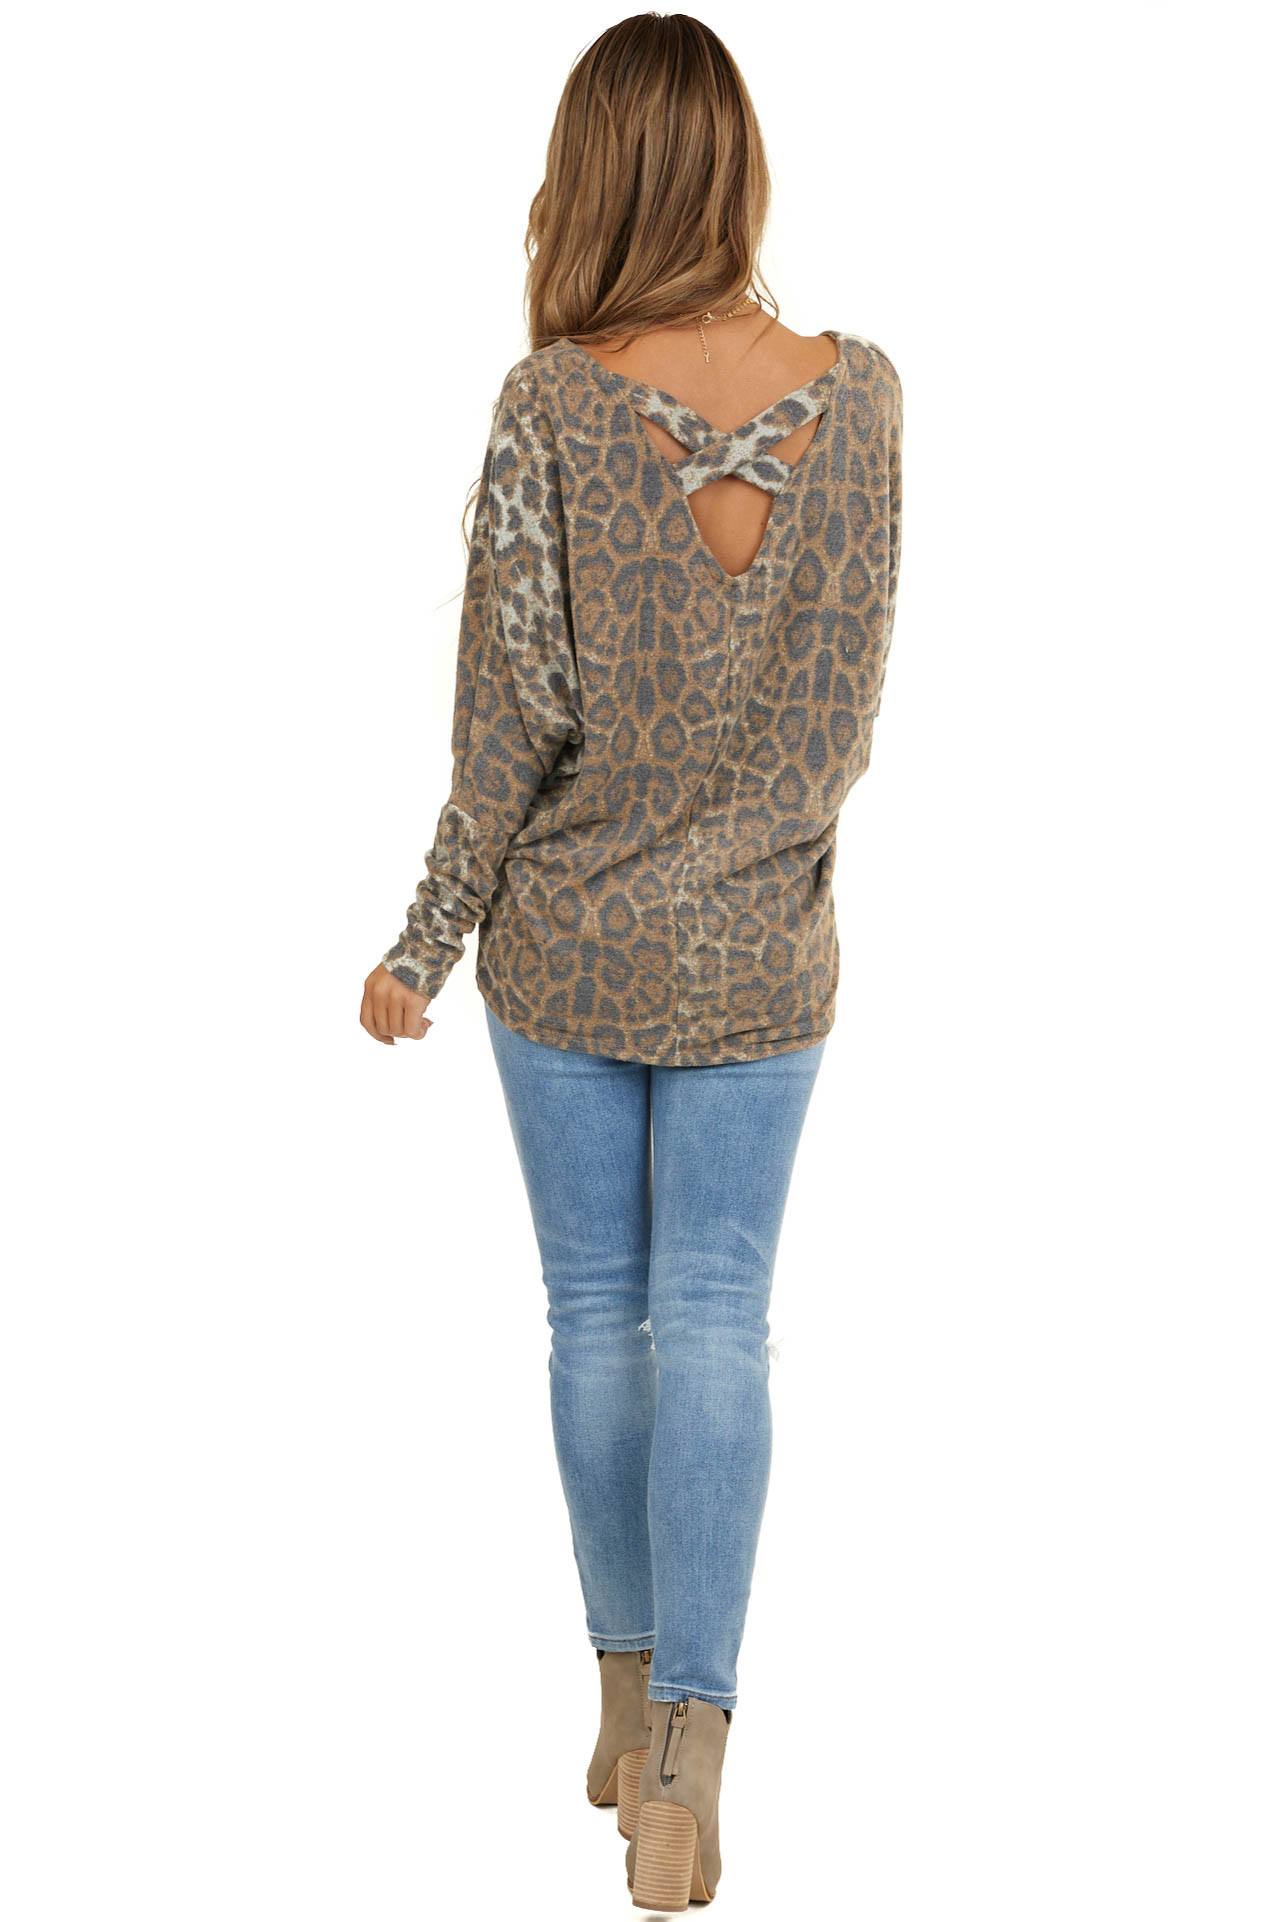 Camel and Charcoal Leopard Print Top with Long Sleeves